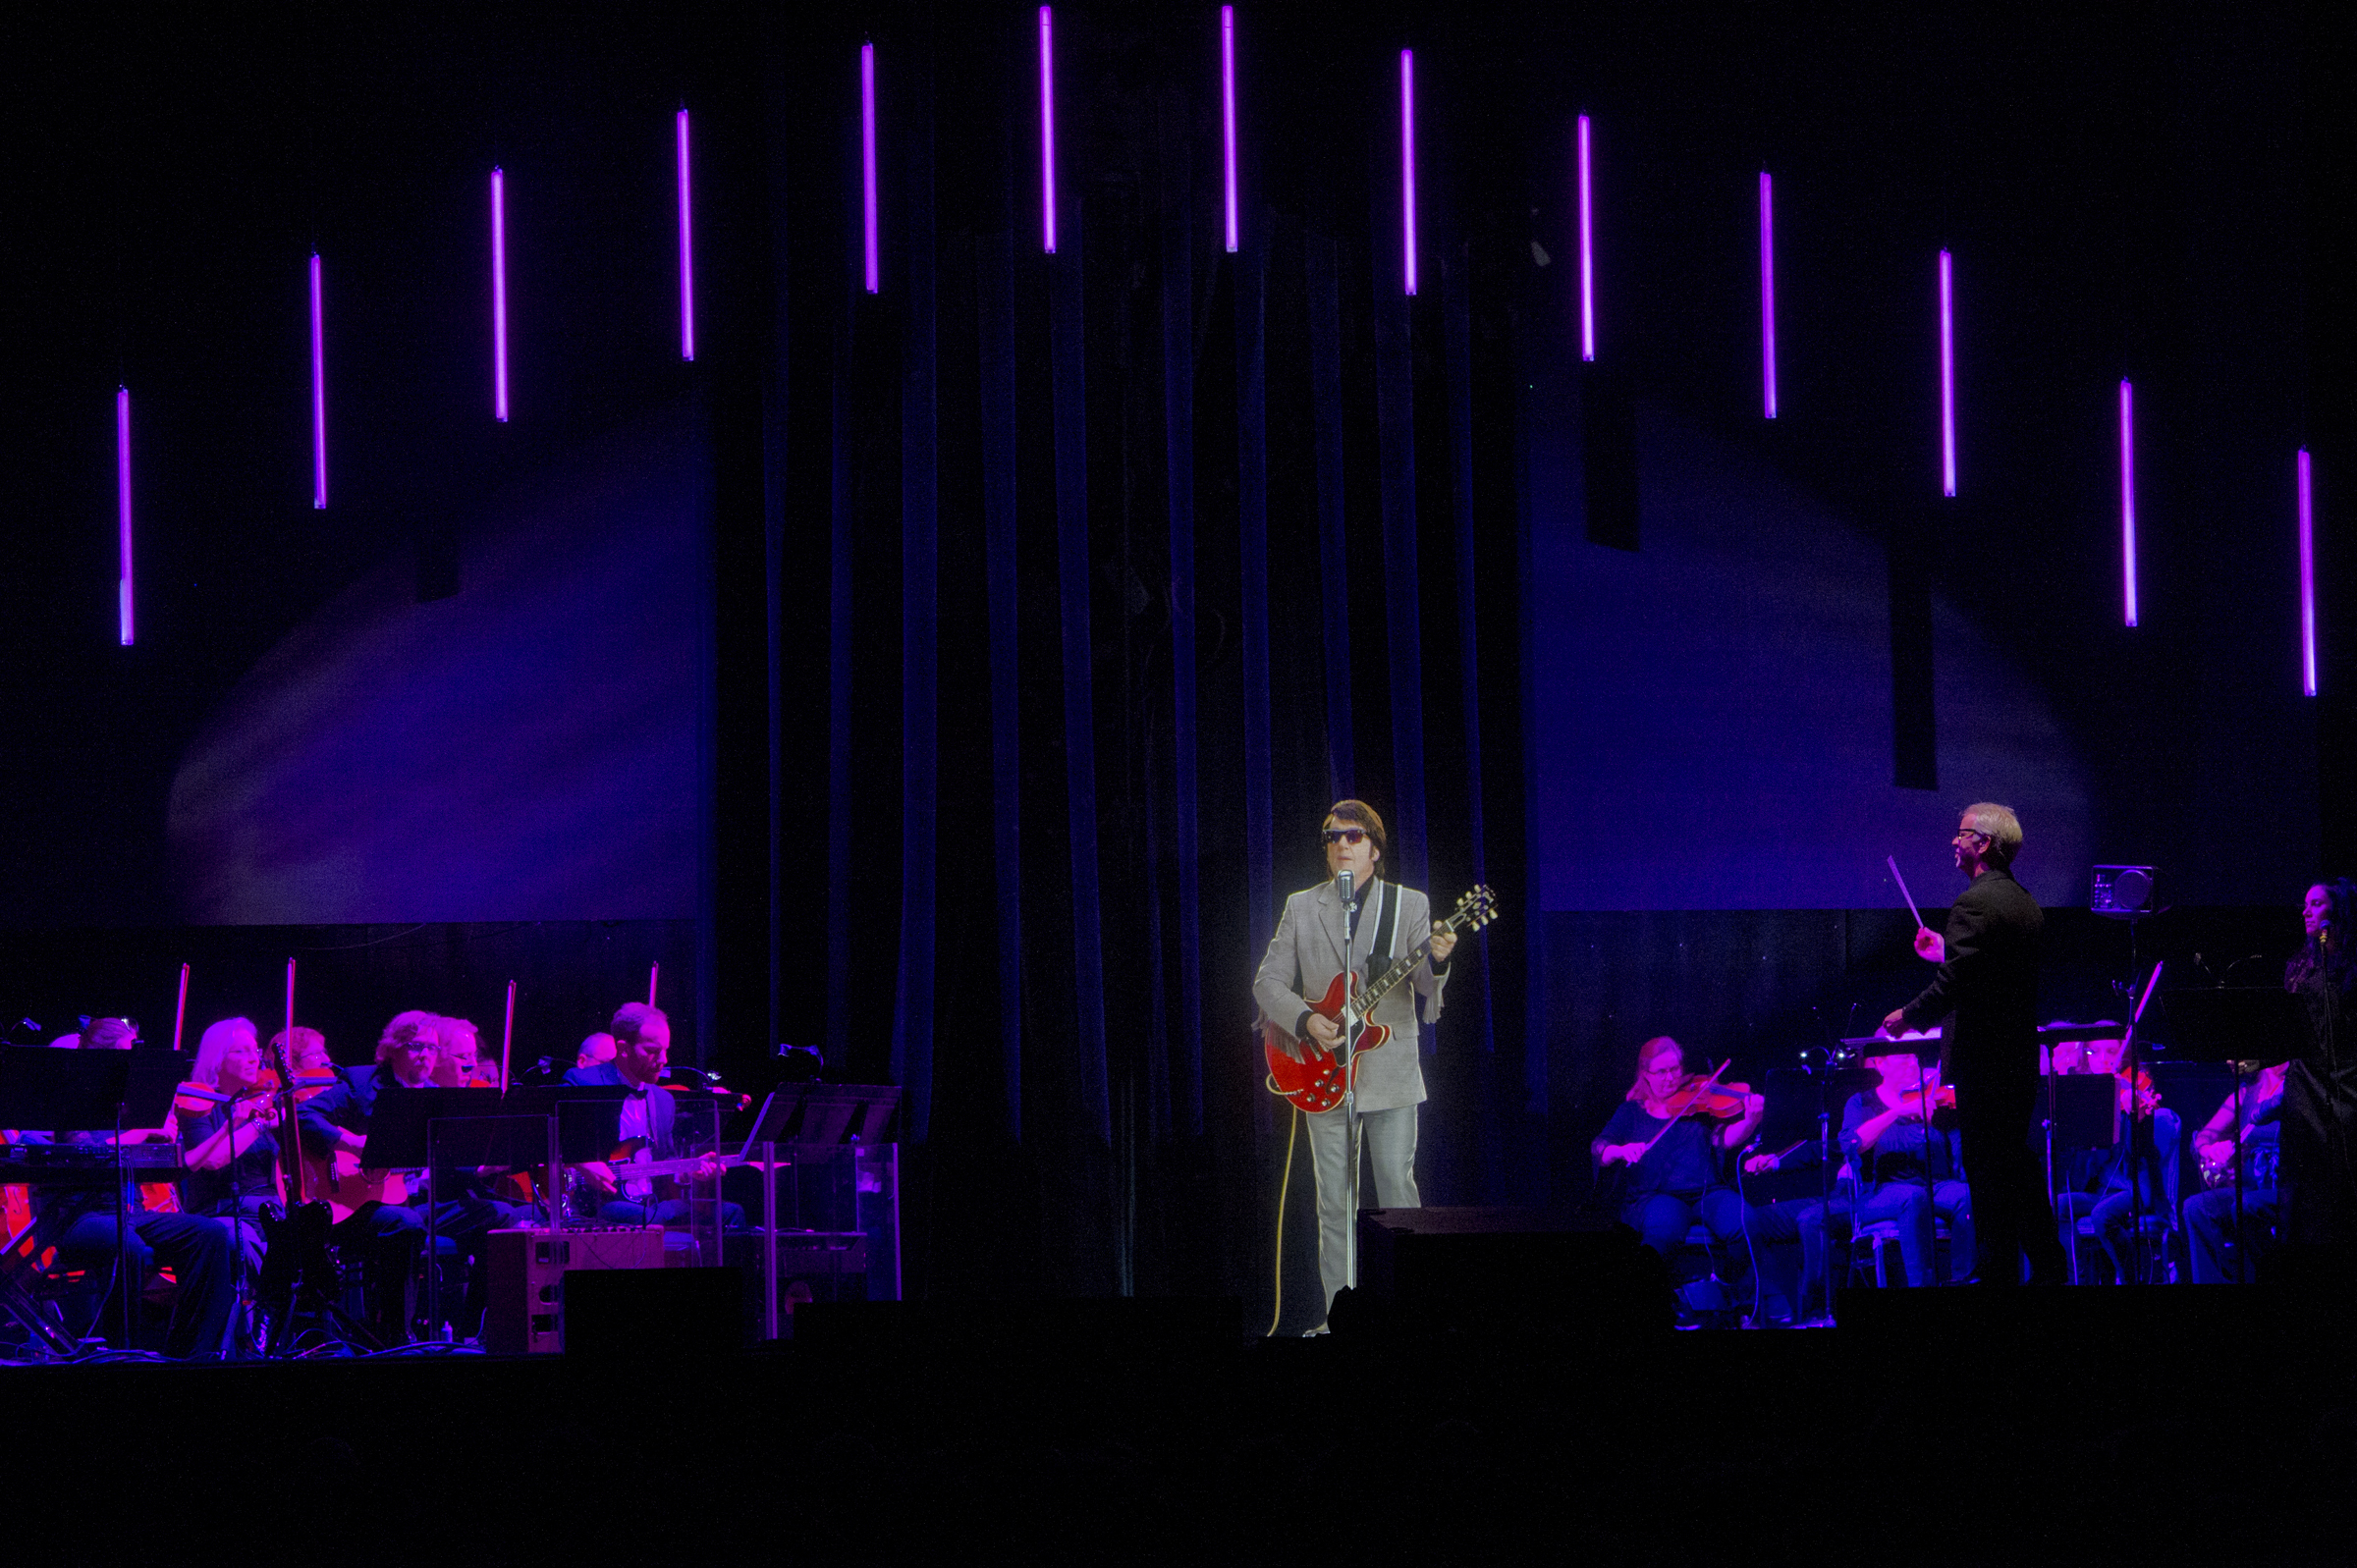 Deceased musical artist Roy Orbison appears to be performing with the Philly Pops, during the Roy Orbison Hologram Tour, the first major hologram tour of its kind, in the Xcite Center theater at Parx Casino in Bensalem, PA, November 9, 2018. Avi Steinhardt / For the Inquirer